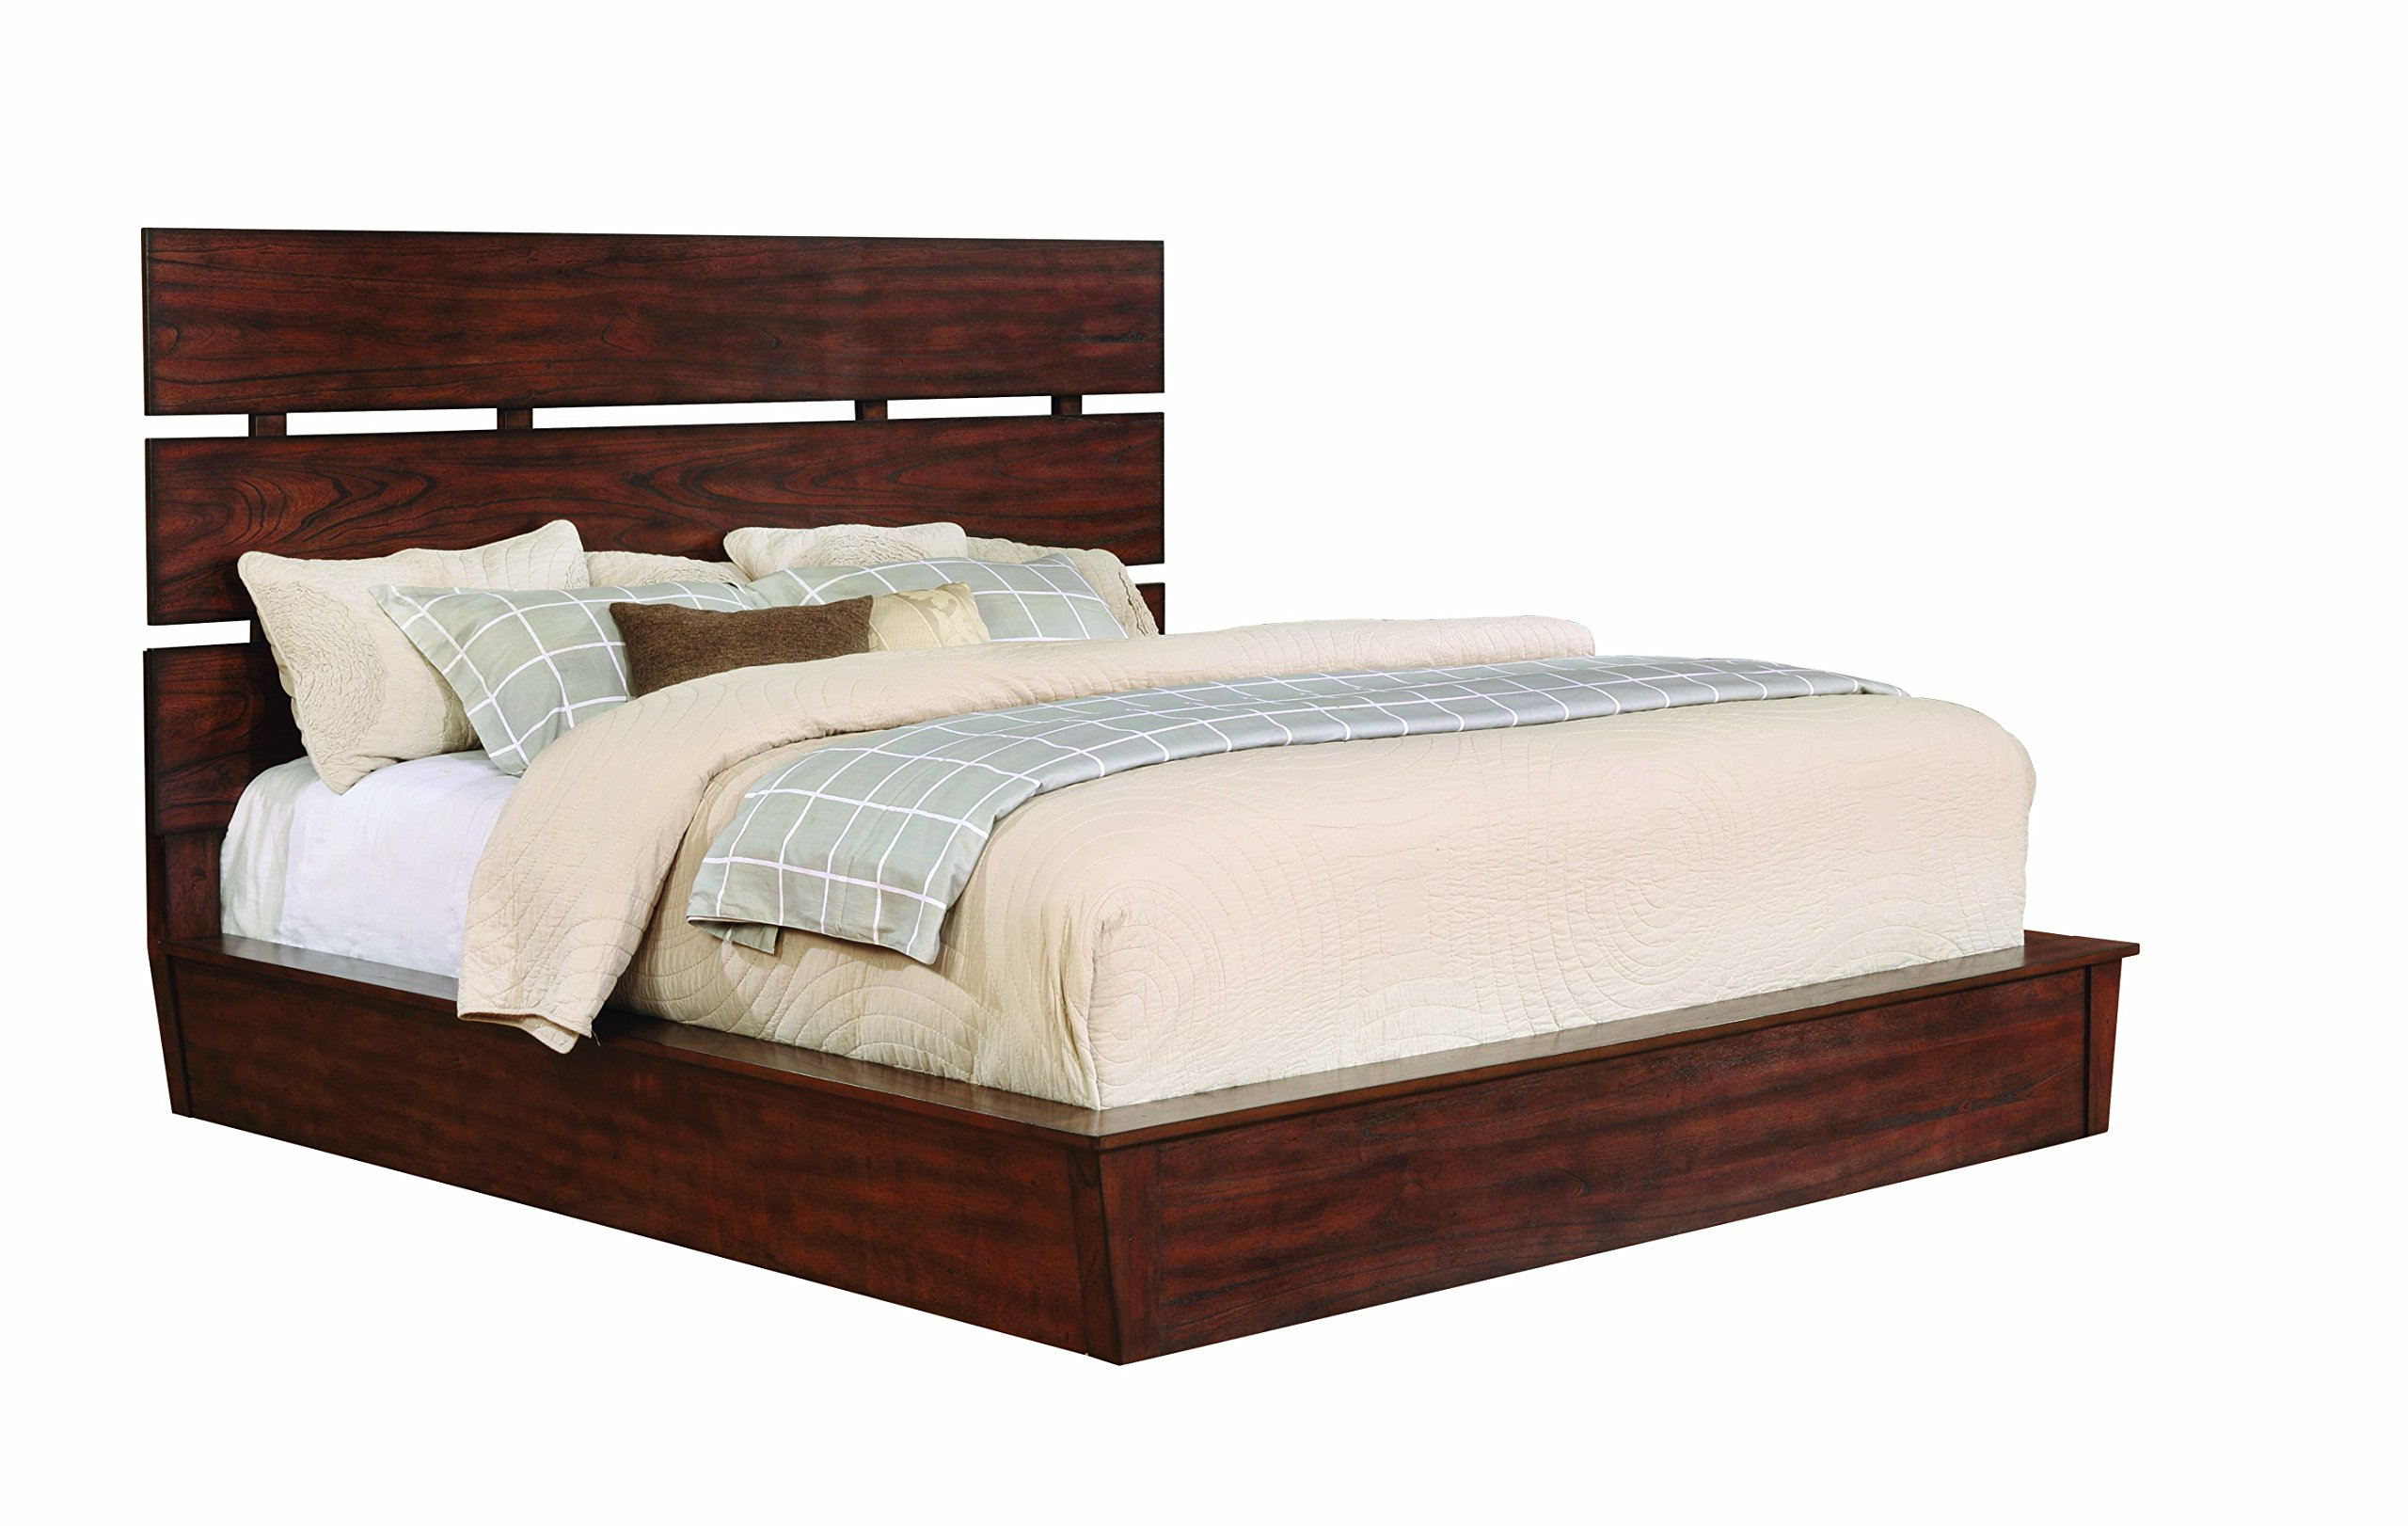 Artesia Eastern King Platform Bed with Plank Headboard Dark Cocoa - Set includes: One (1) bed Materials: Poplar wood, mindy veneer, MDF and plywood Finish Color: Dark cocoa - bedroom-furniture, bedroom, bed-frames - 81E%2Bk13ey8L -